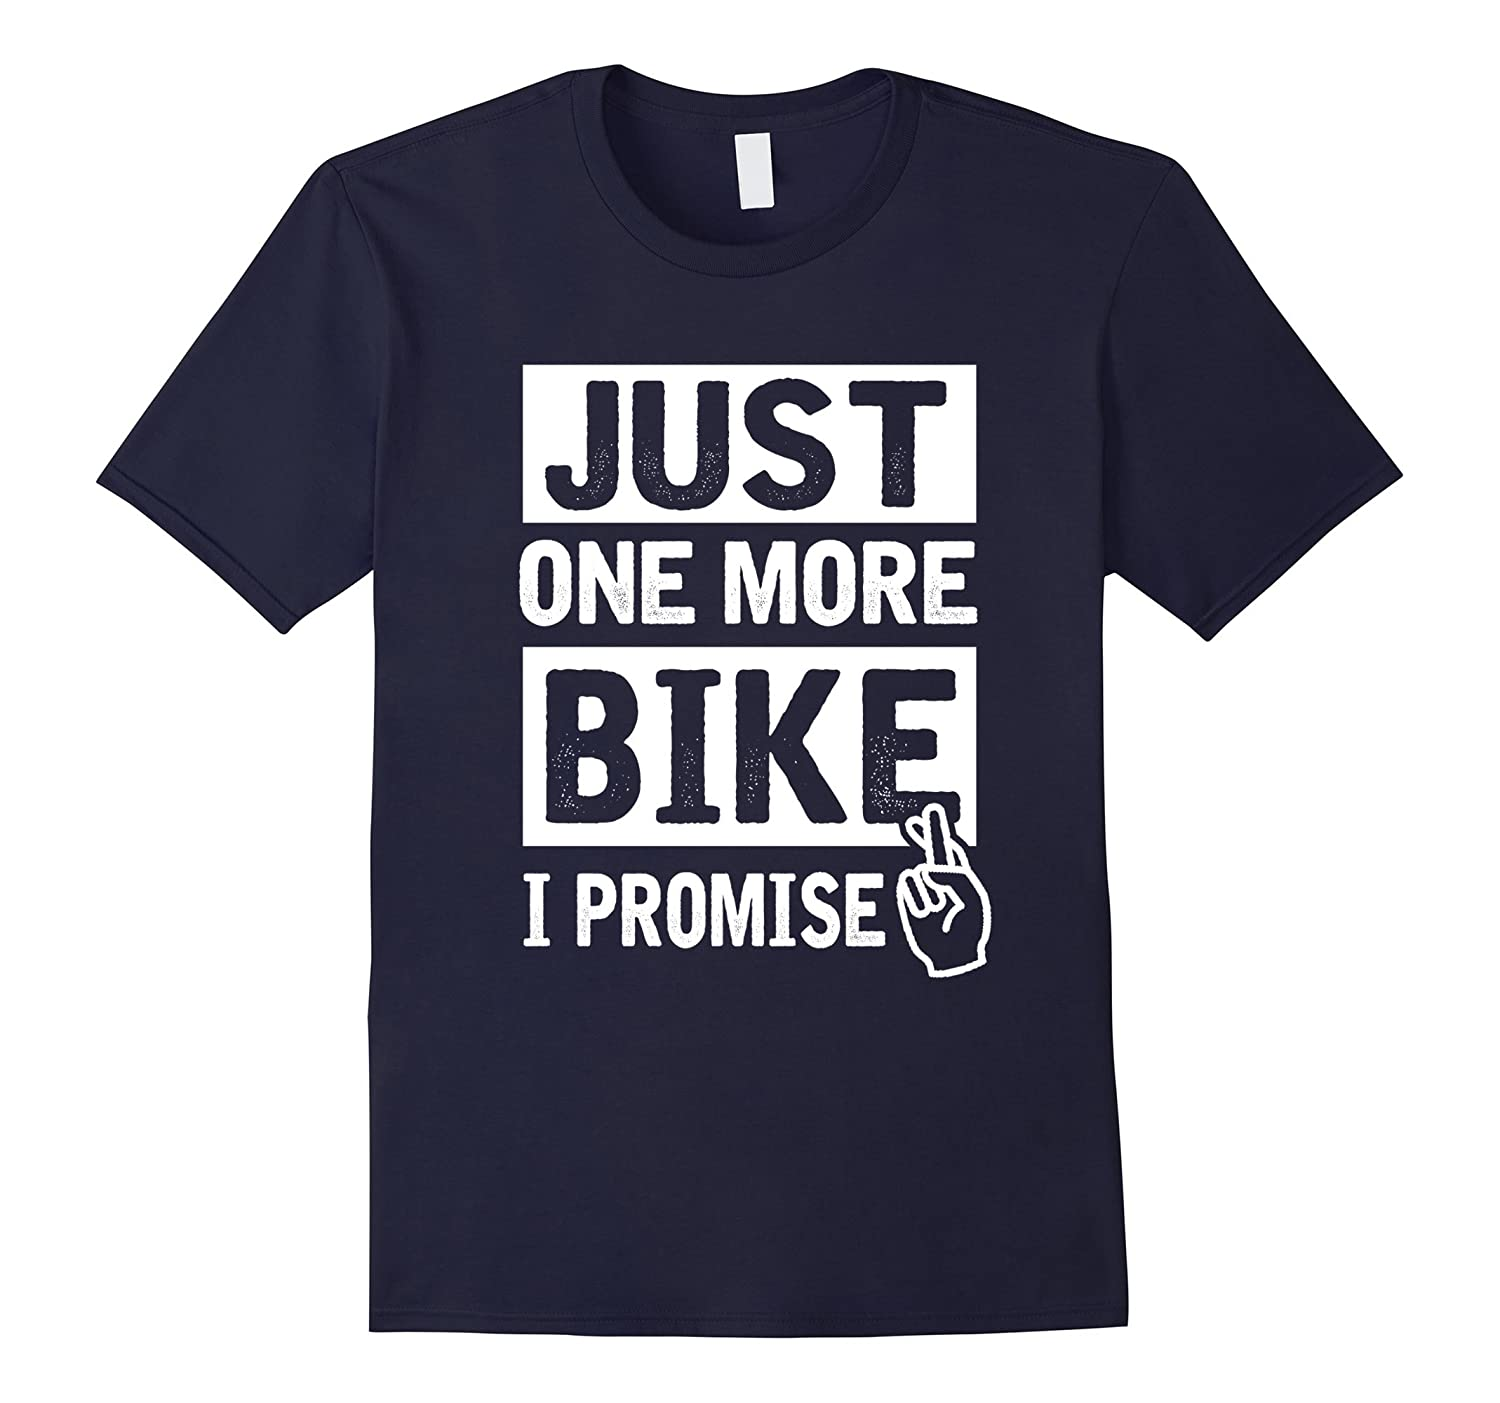 Just One More Bike I Promise T-Shirt Bicycle Motorcycle Gift-Vaci